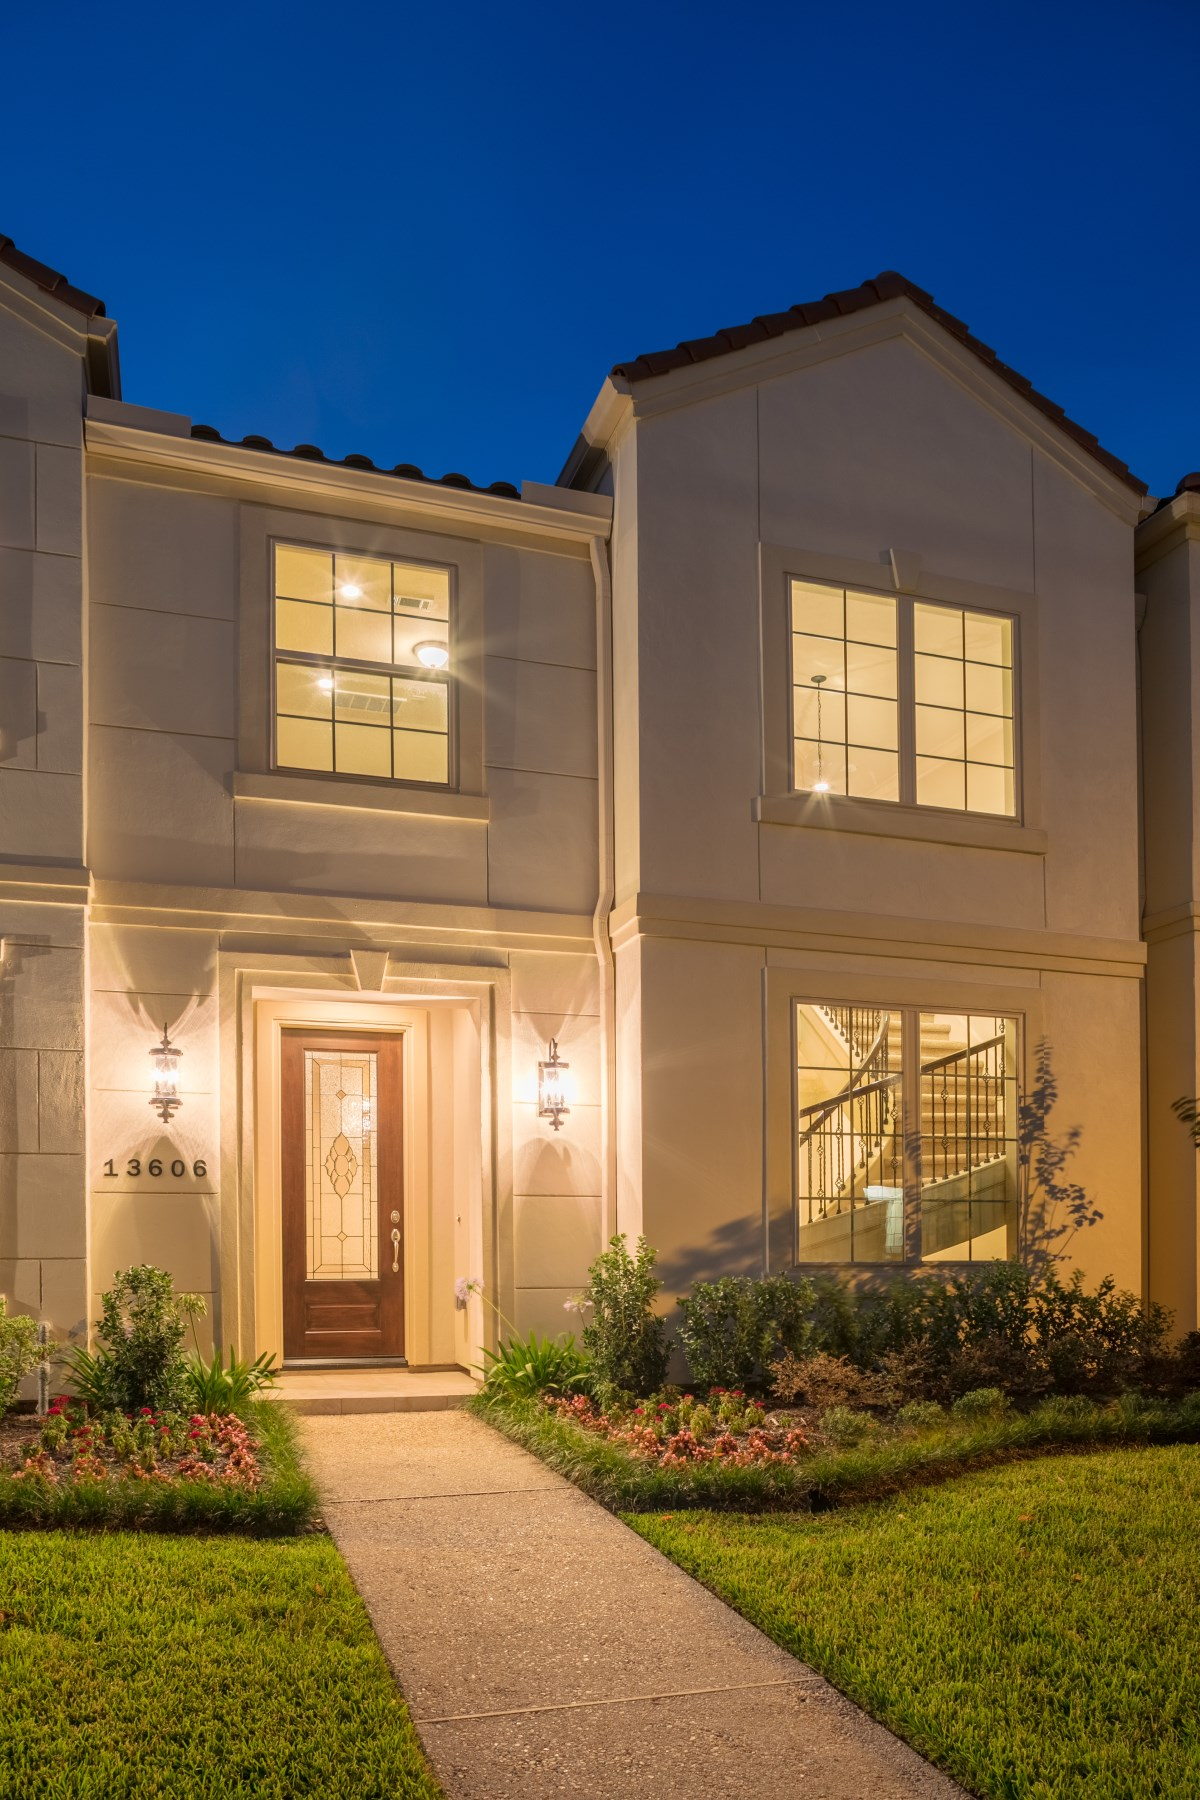 Townhouse for Sale at 13606 Teal Bluff Lane 13606 Teal Bluff Lane Houston, Texas 77077 United States